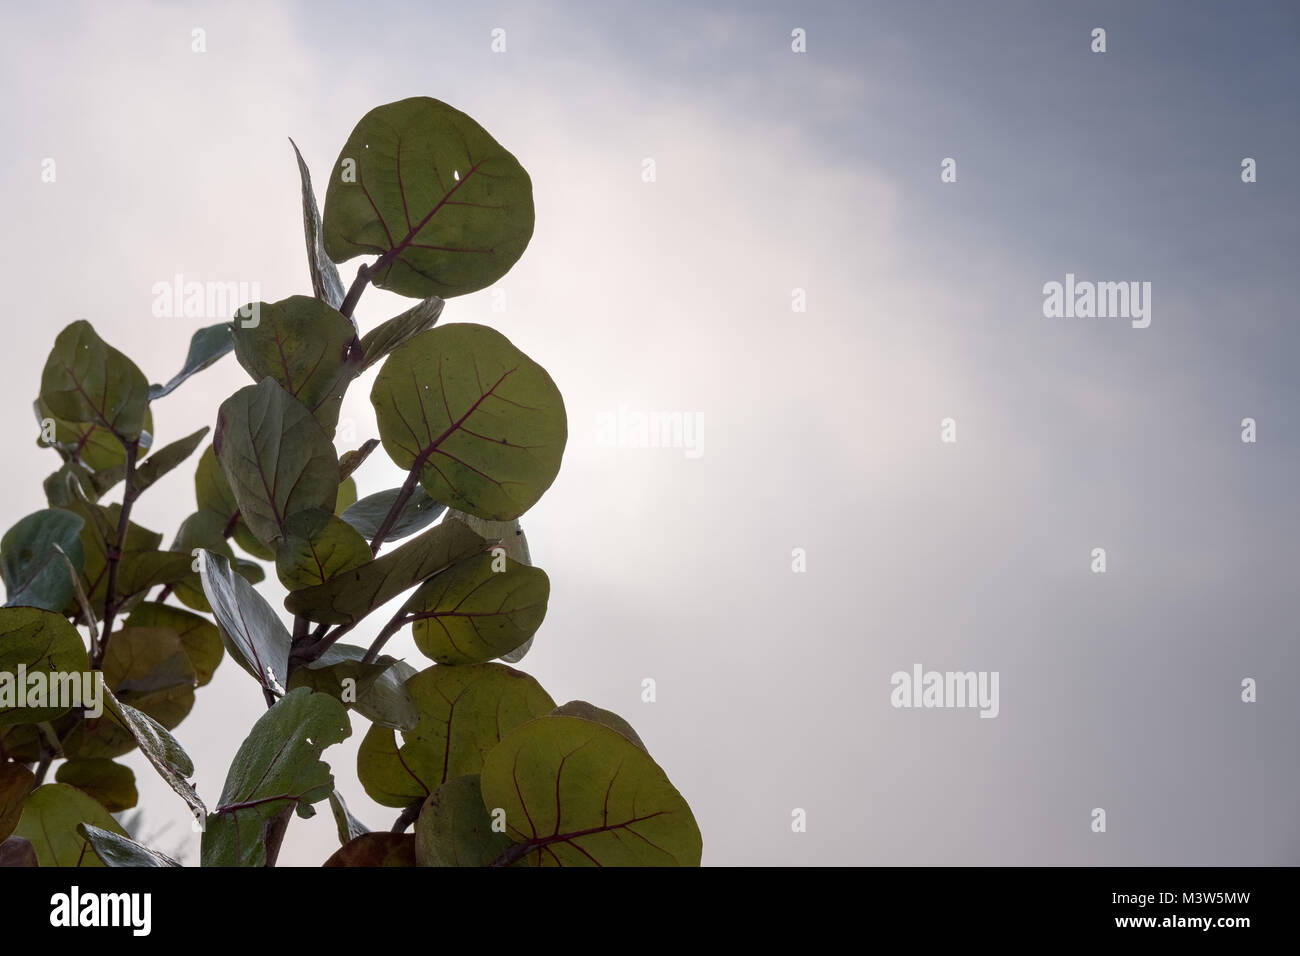 Leaves with stem, Isolated with Grey sky in background - Stock Image